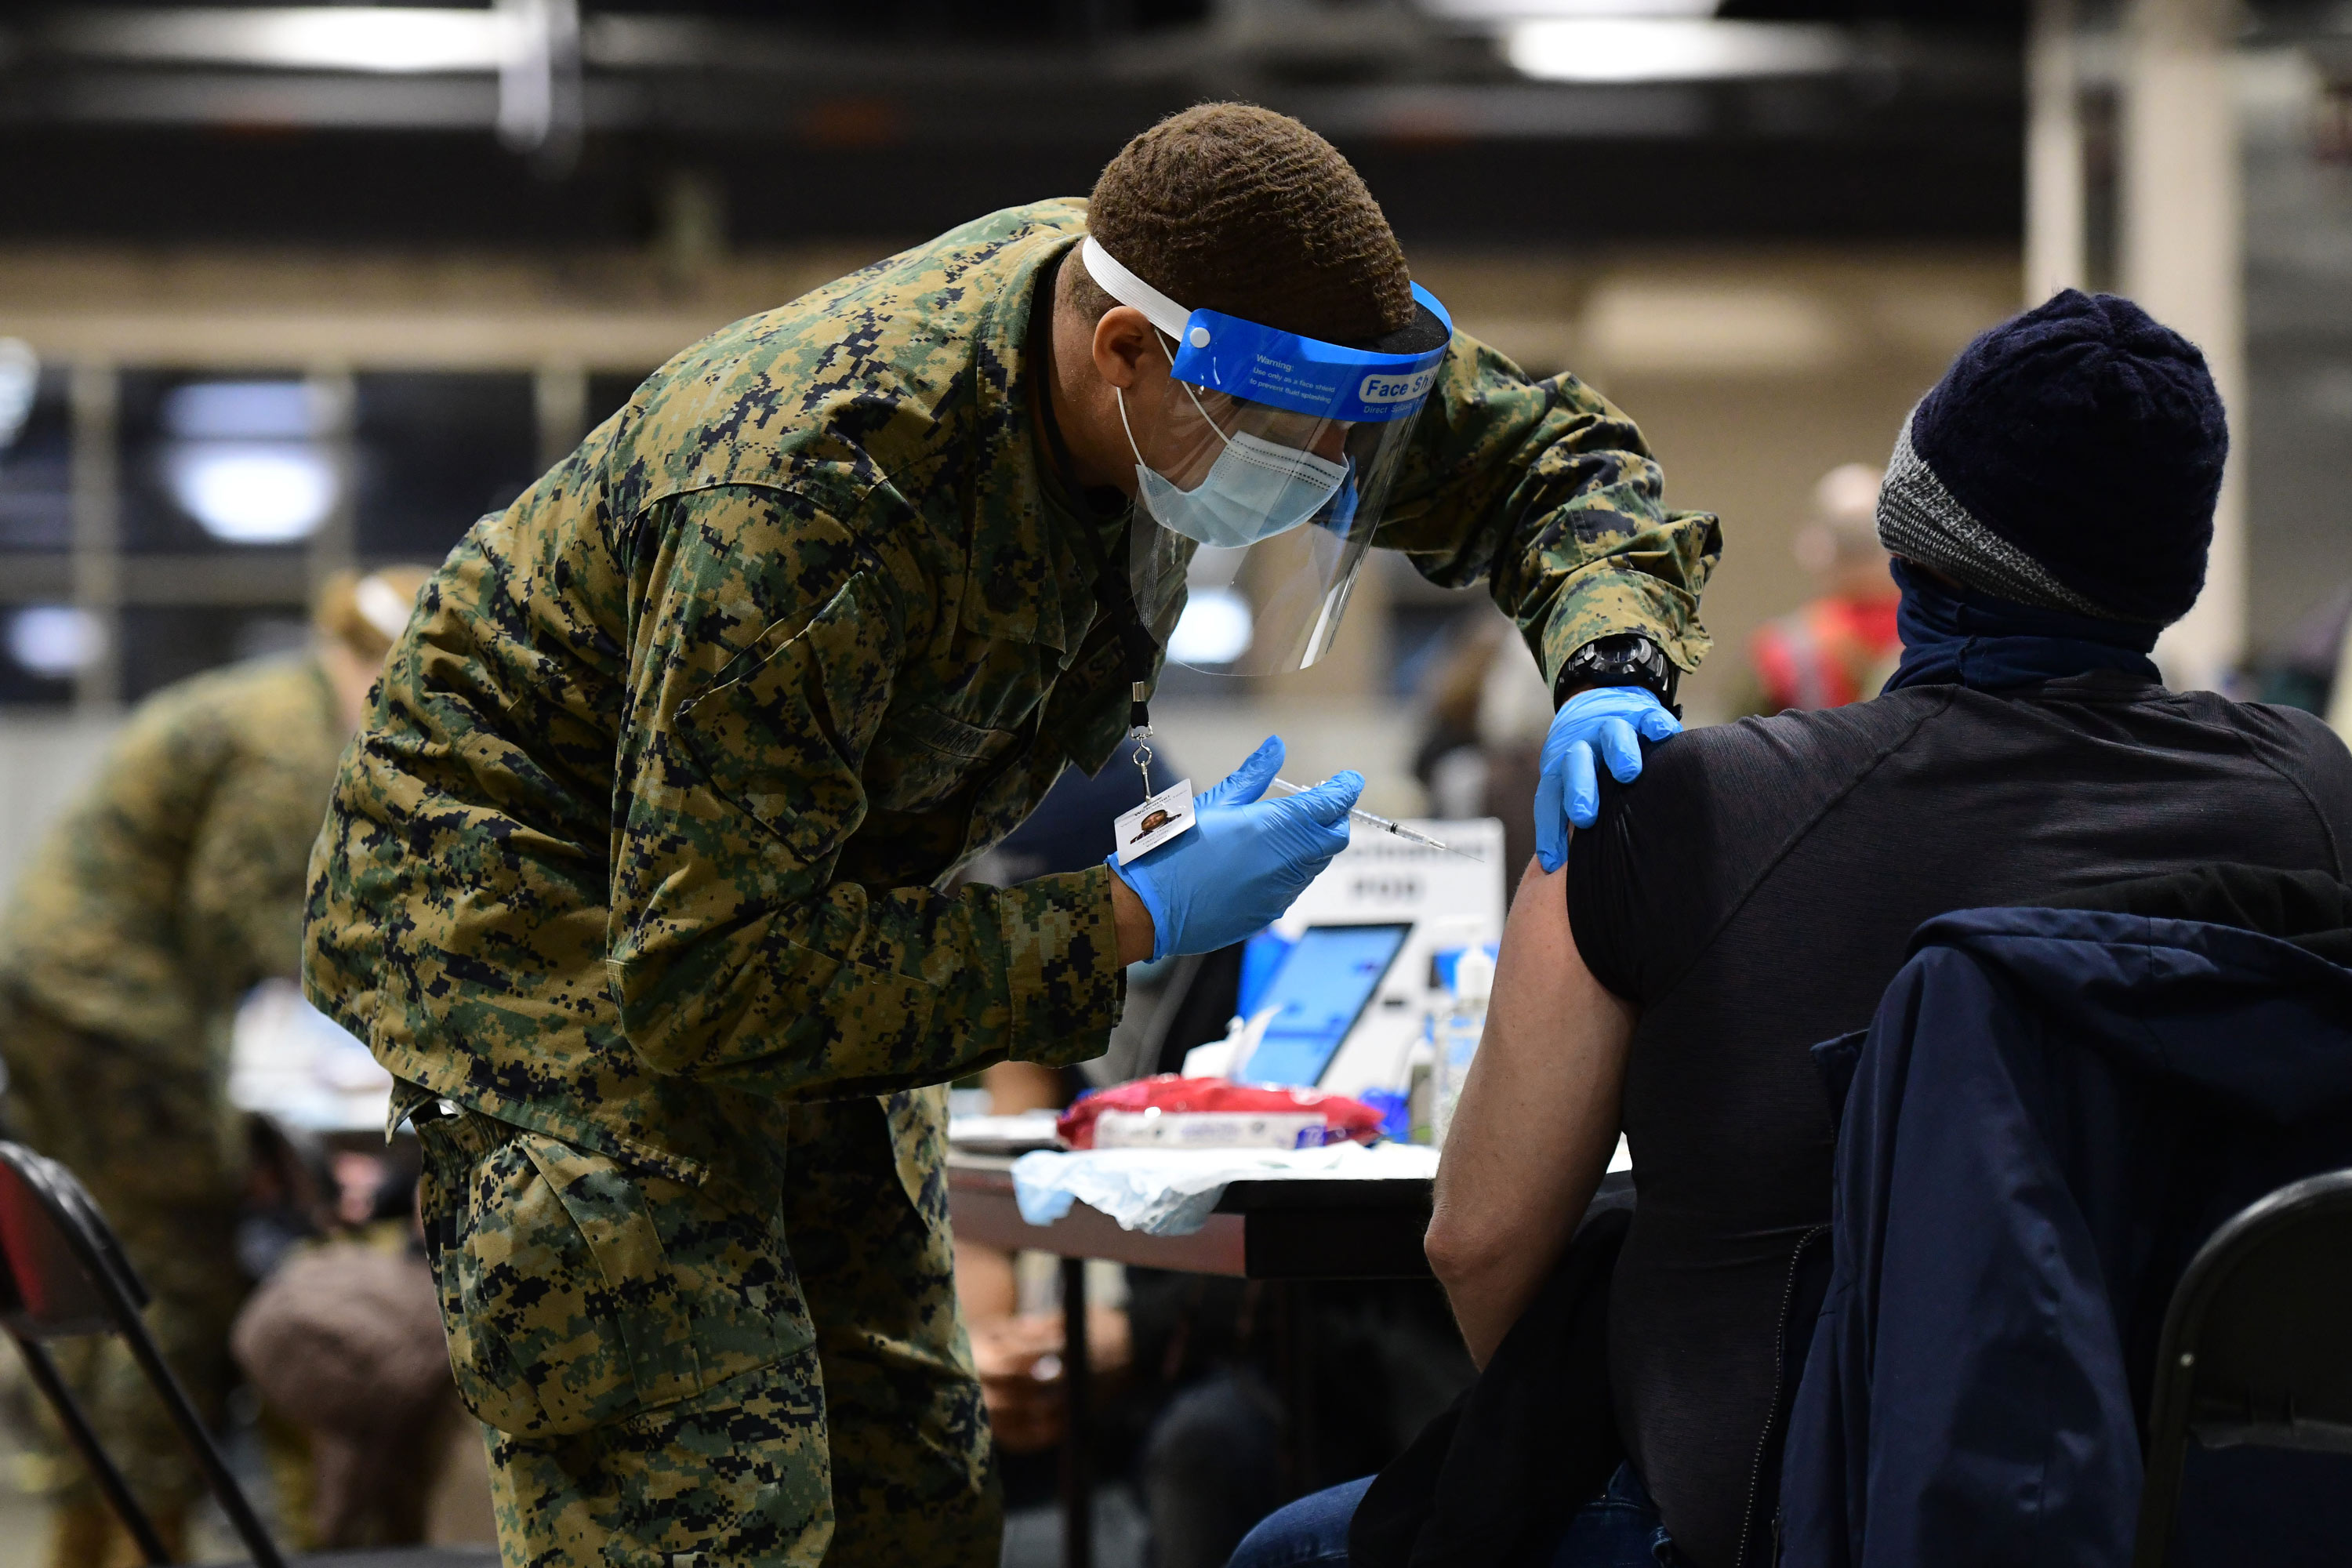 A member of the U.S. Armed Forces administers a dose of the Pfizer COVID-19 vaccine at a FEMA community vaccination center on March 2 in Philadelphia, Pennsylvania.